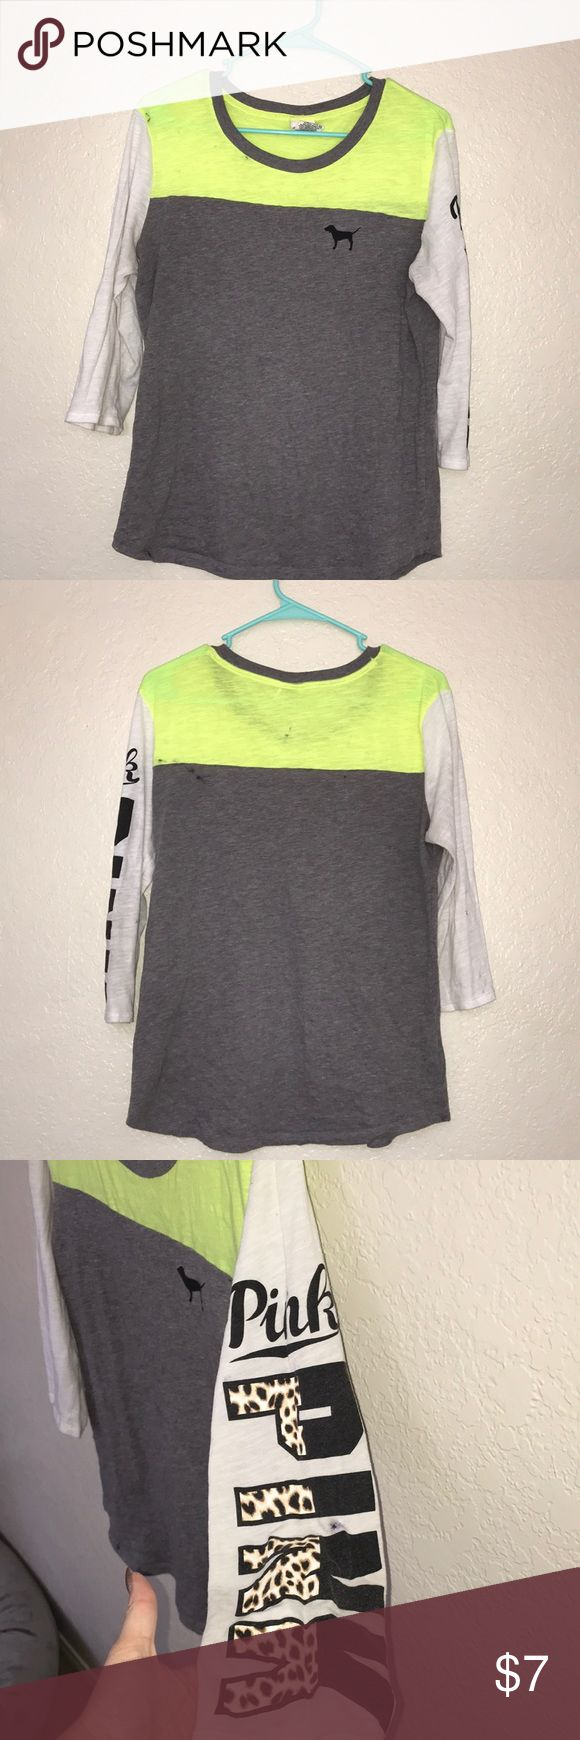 Victoria's Secret quarter sleeve shirt Quarter sleeve shirt with neon yellow at top and cheetah print writing on sleeve. Slightly worn | selling cheap due to some ink stains PINK Victoria's Secret Tops Tees - Long Sleeve